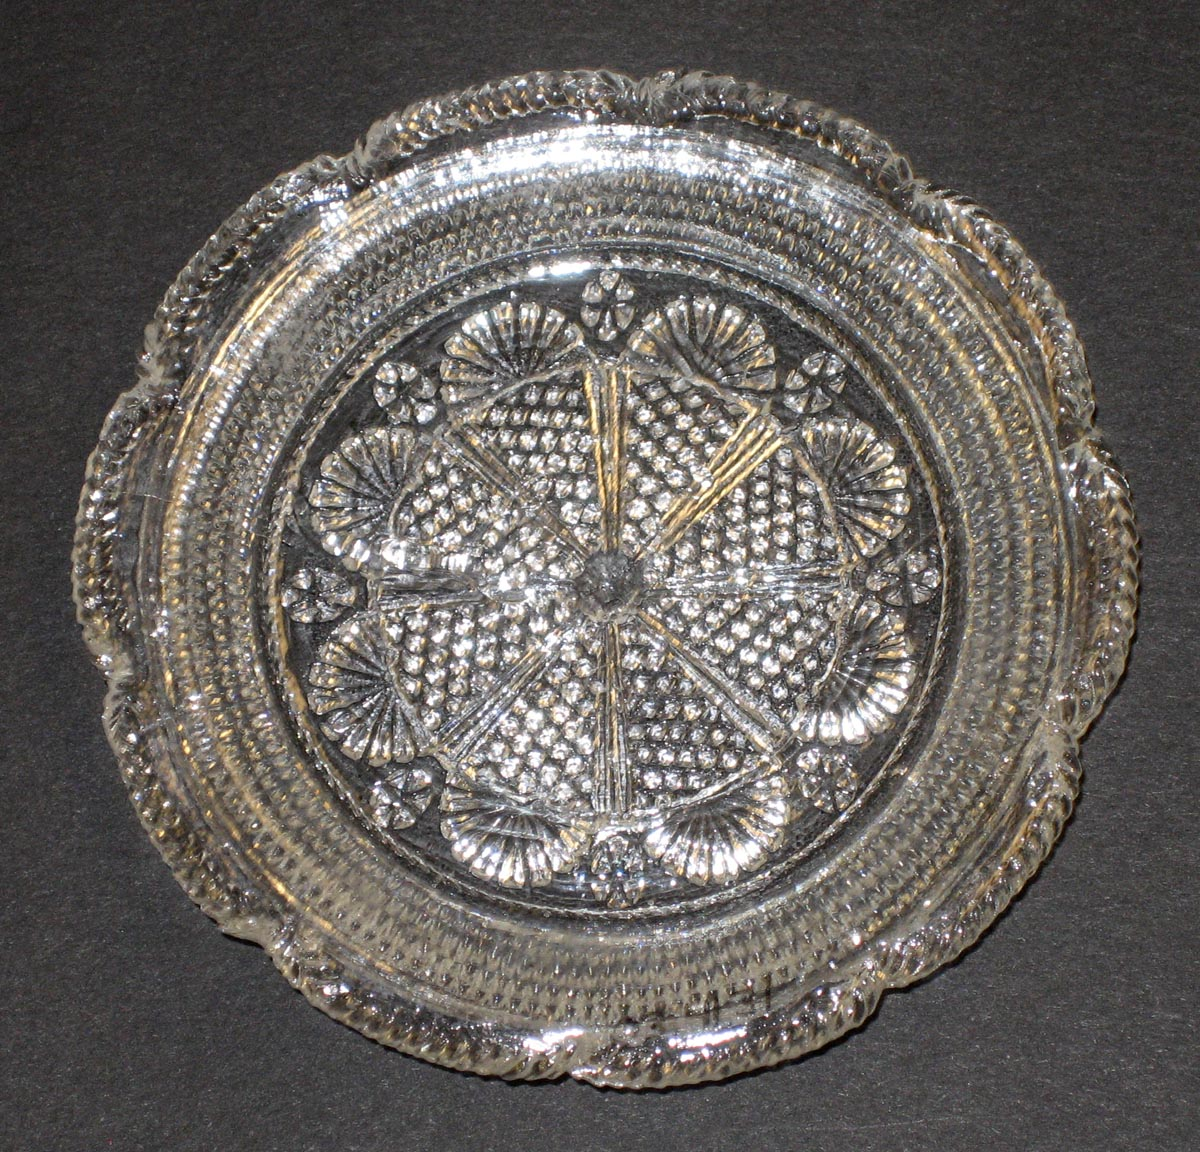 2003.0041.031 Rosette-pattern cup plate